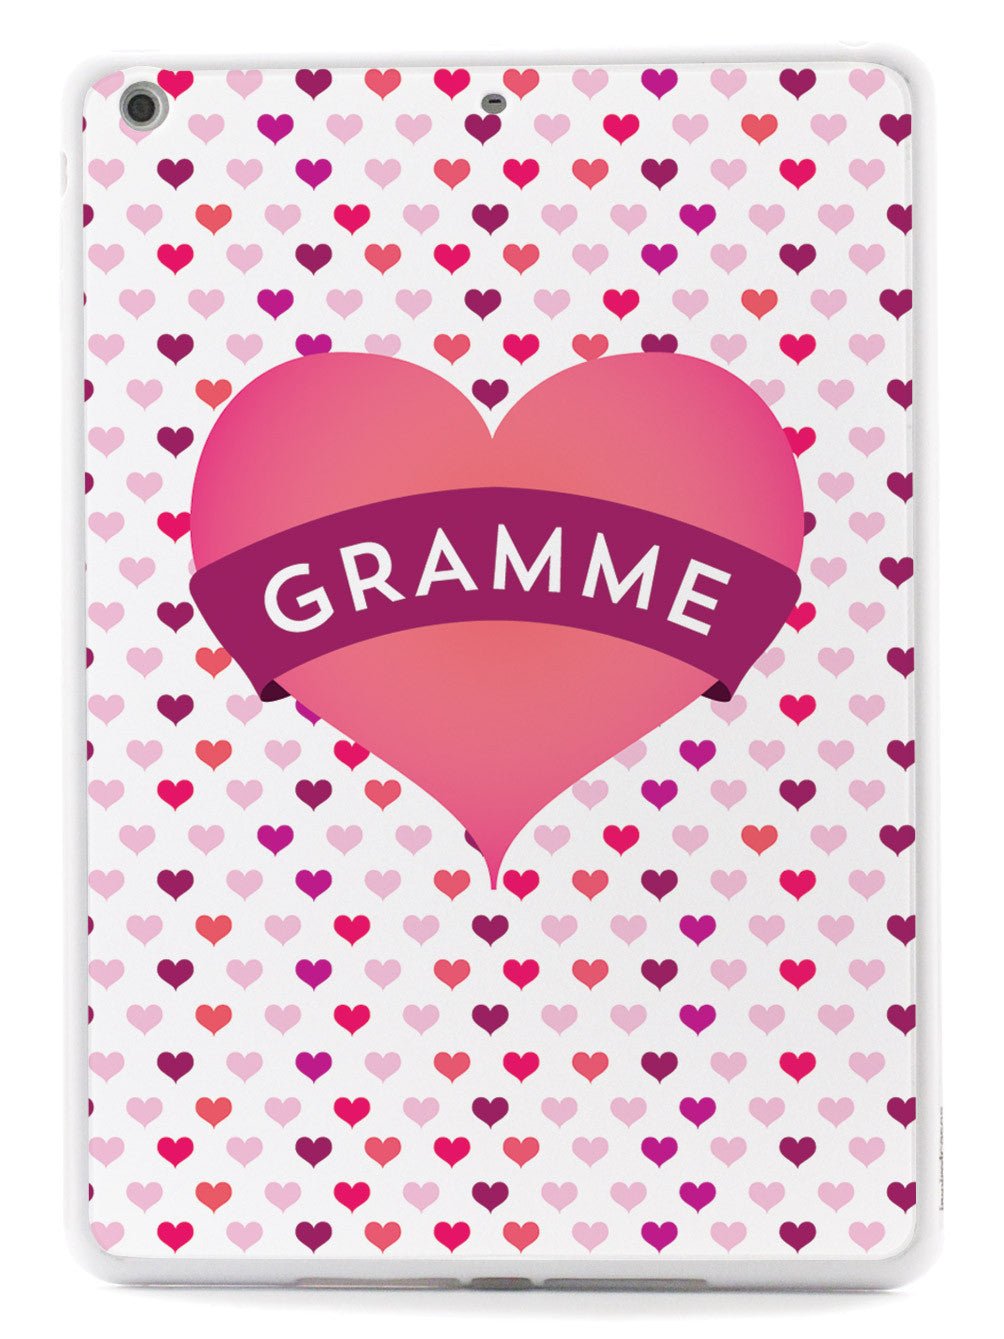 Gramme Heart for Grandma Case